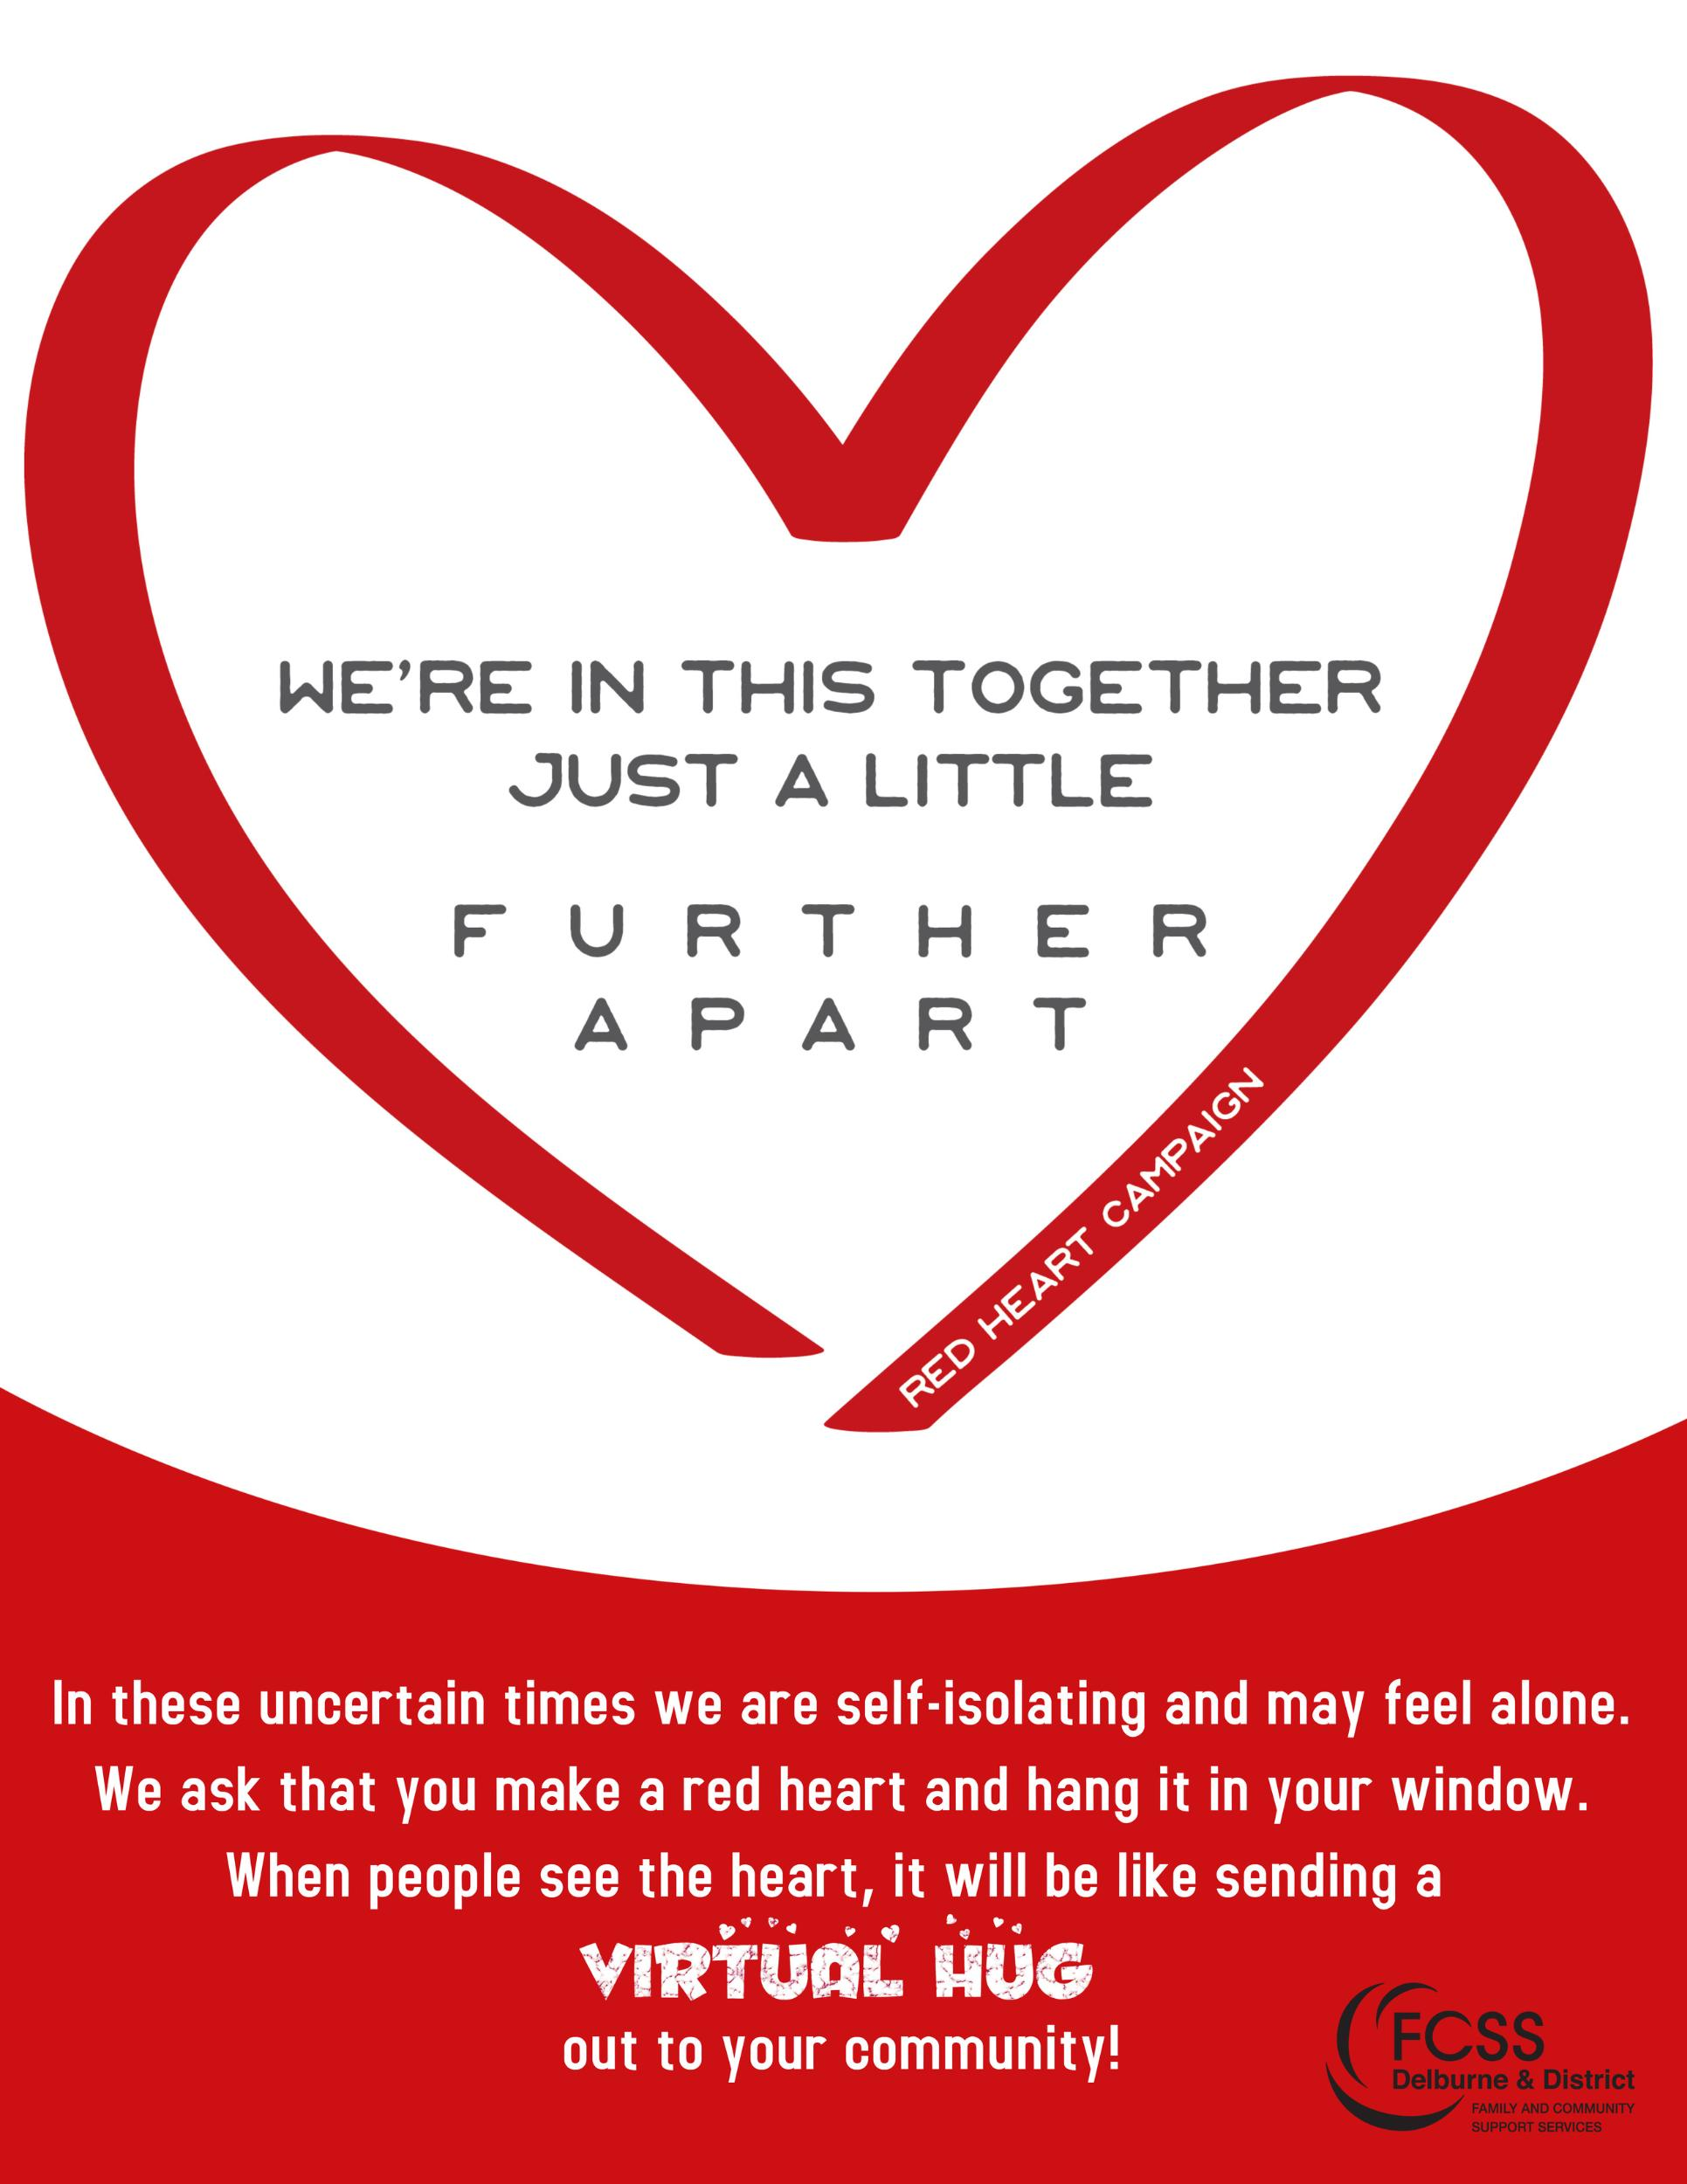 Red Heart Campaign Poster.jpg